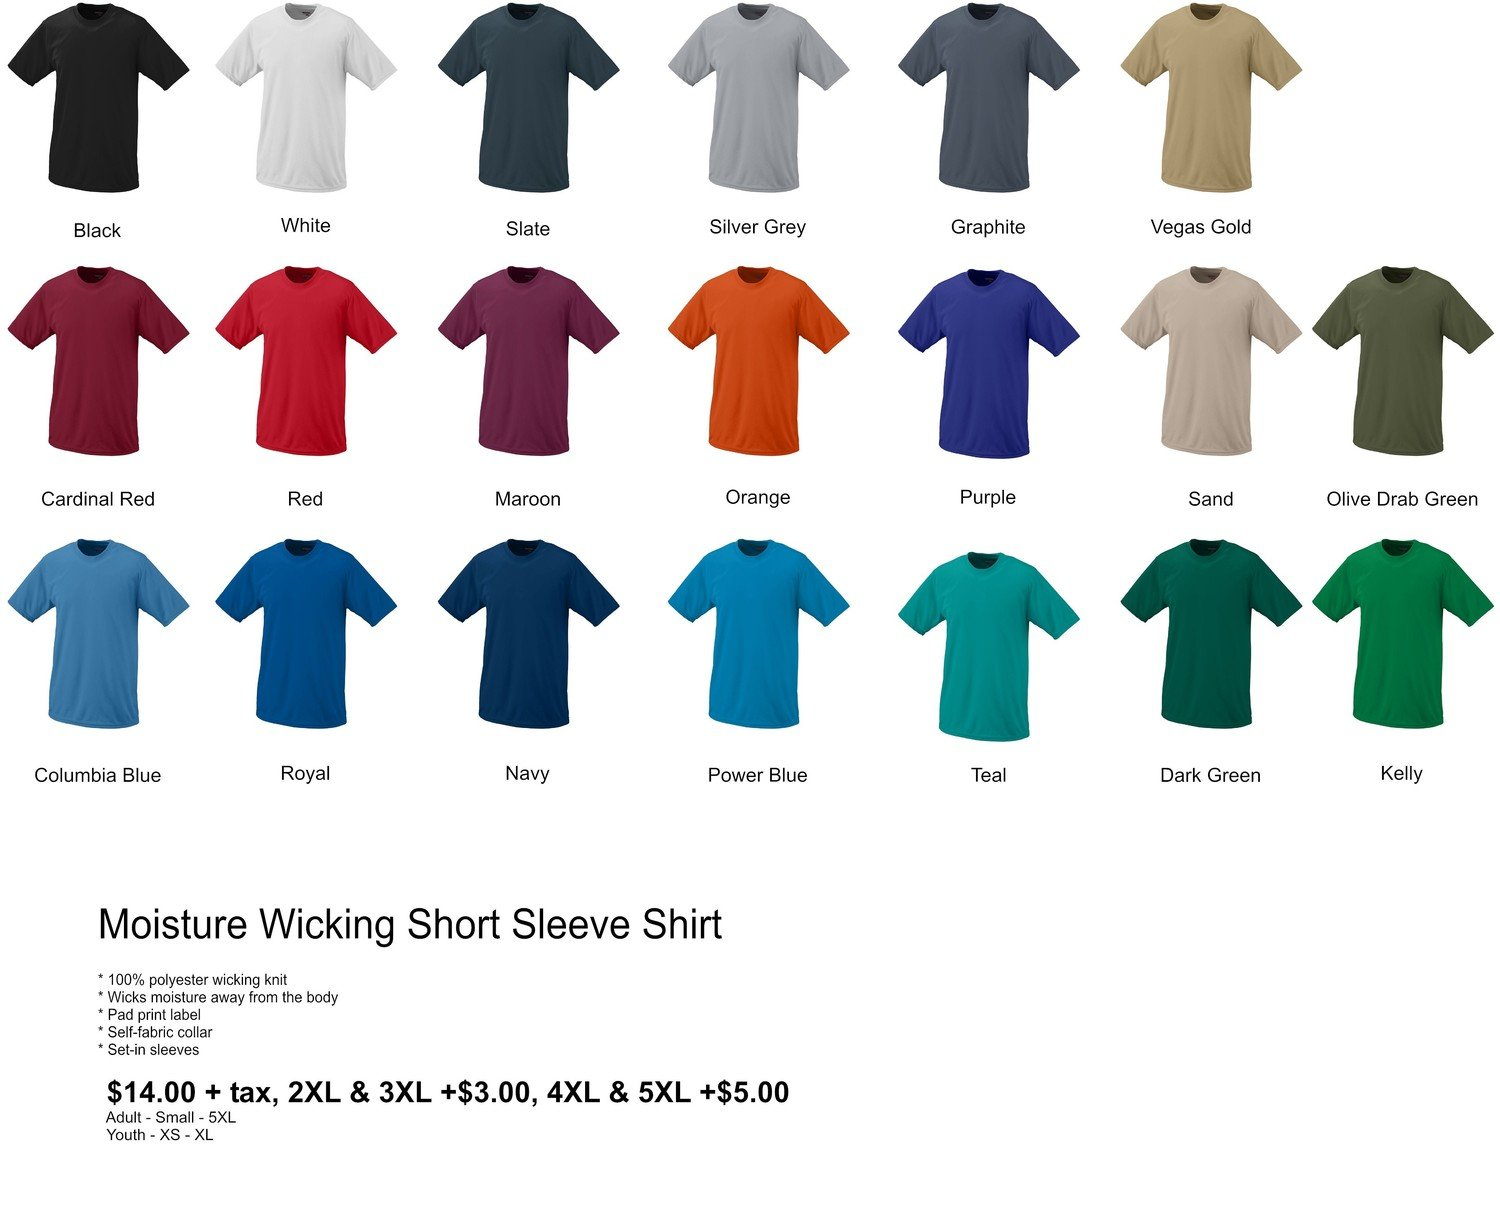 Moisture Wicking Short Sleeve Shirt